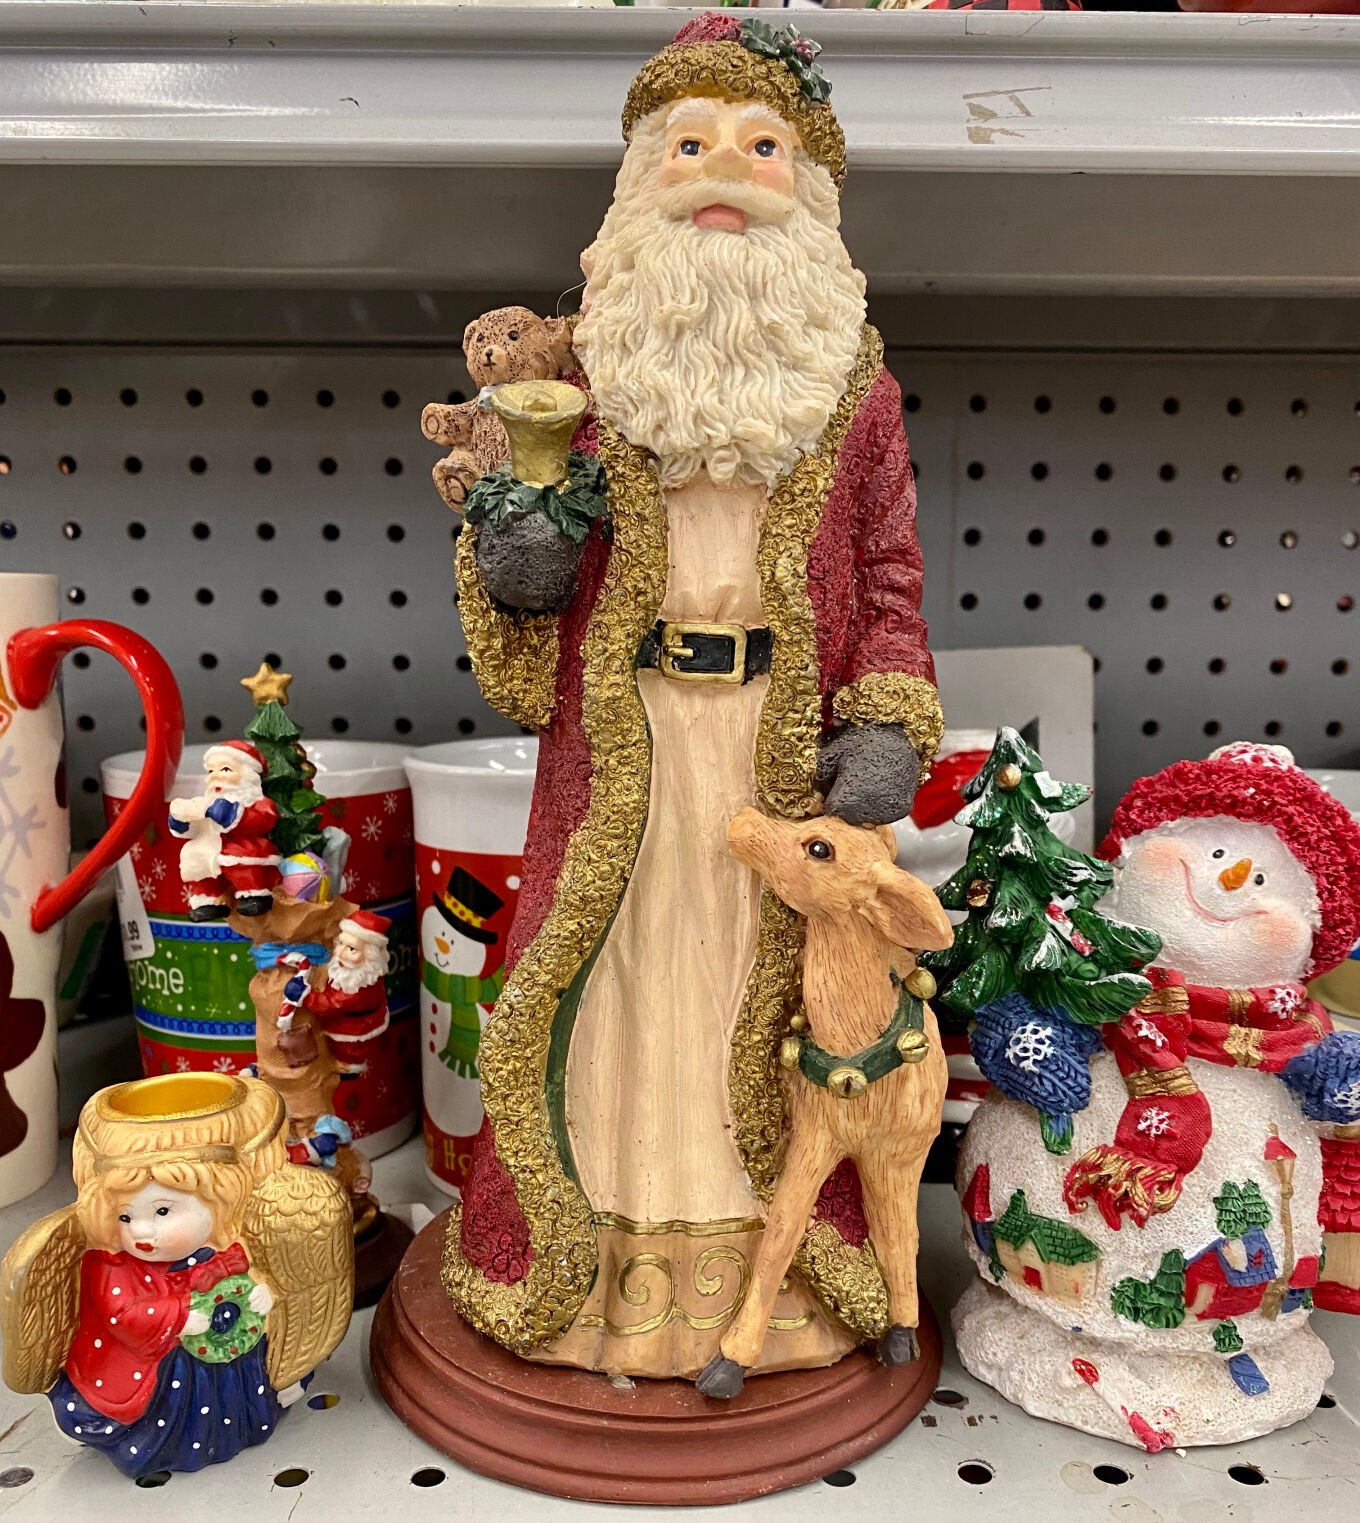 Goodwill Christmas in July